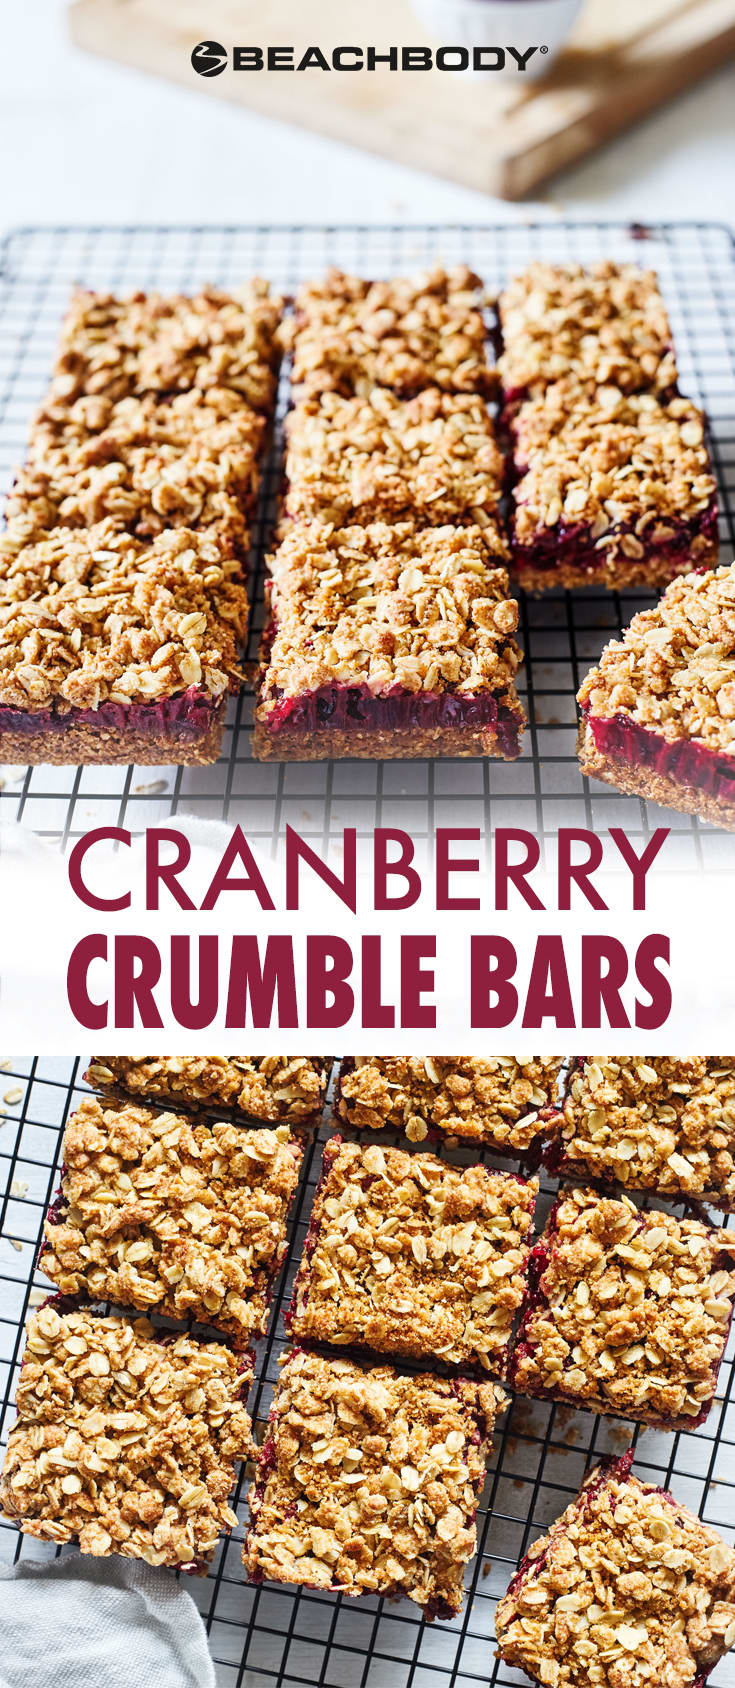 These mouthwatering Cranberry Crumble Bars feature a sweet and tart cranberry orange filling on a dense pastry crust topped with crisp oats.